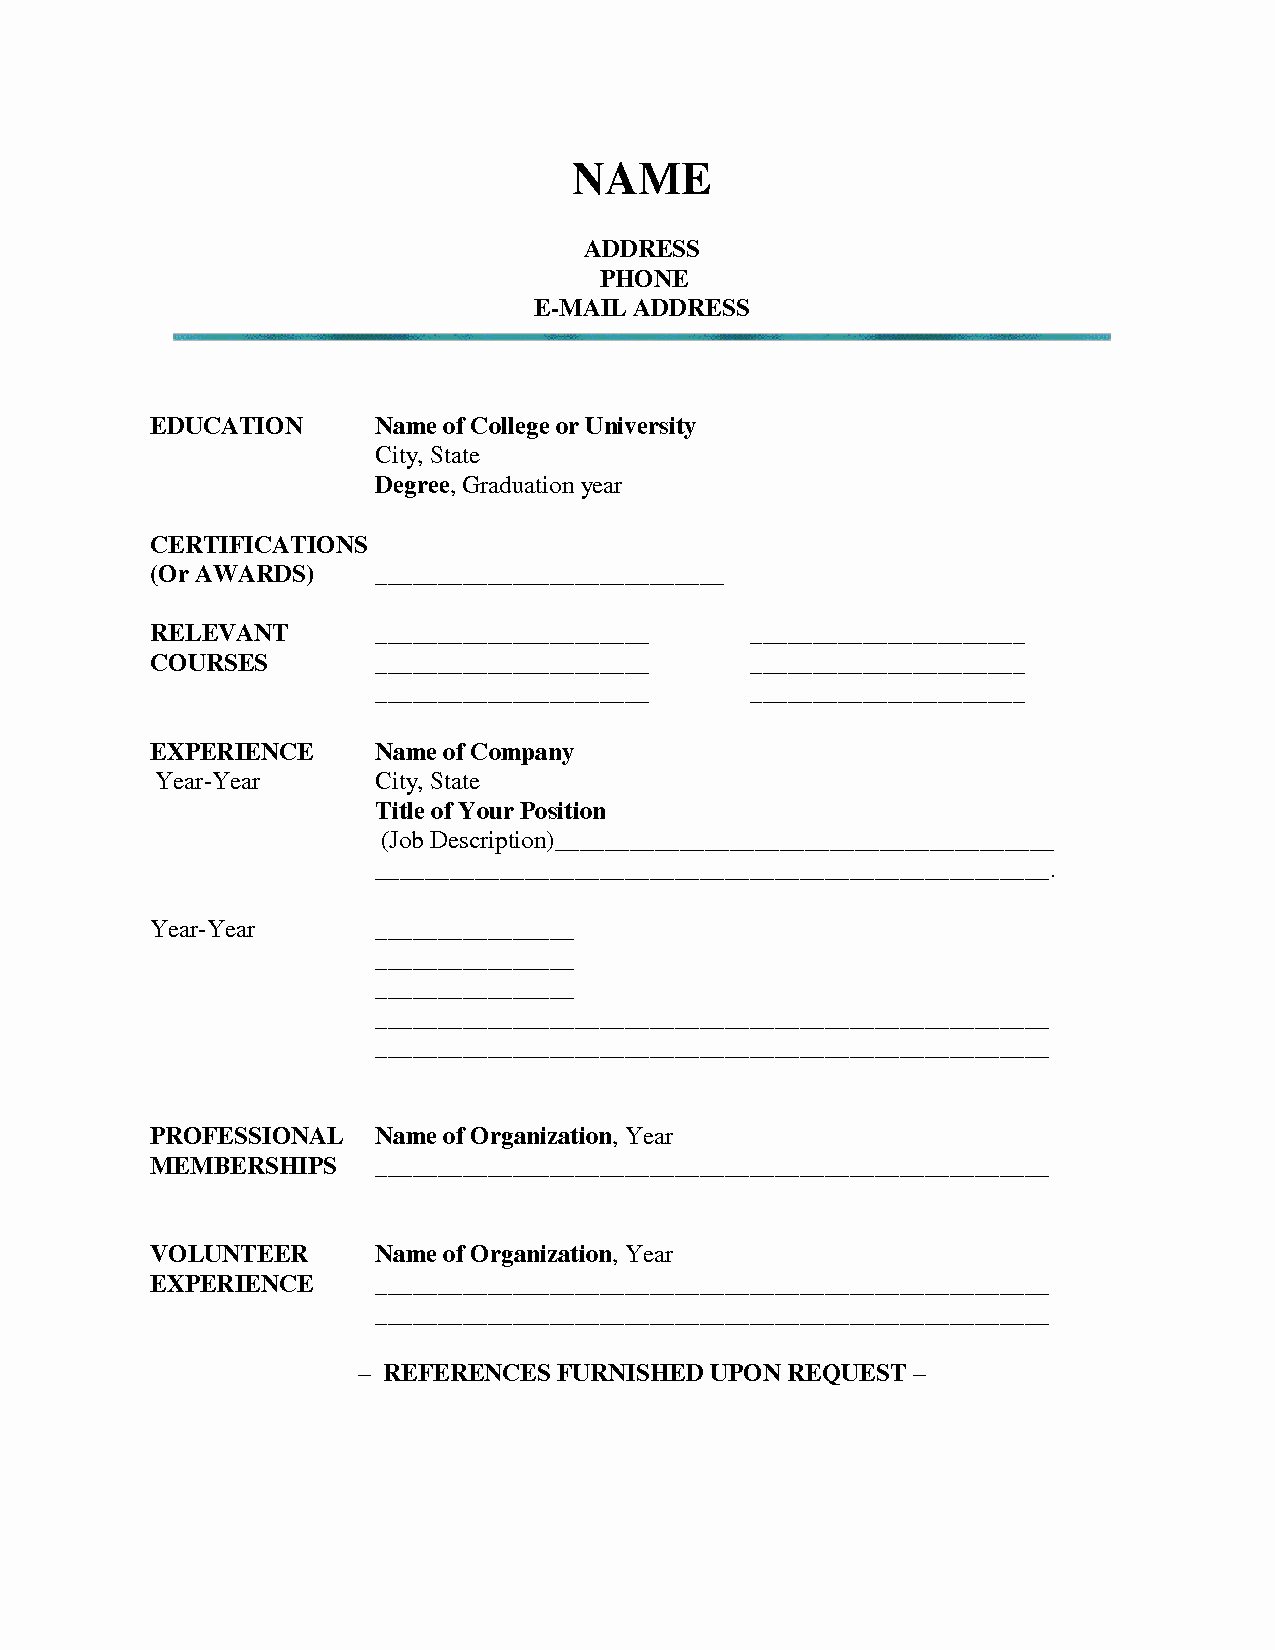 Resumes Fill In the Blanks Best Of Blank Resume Template